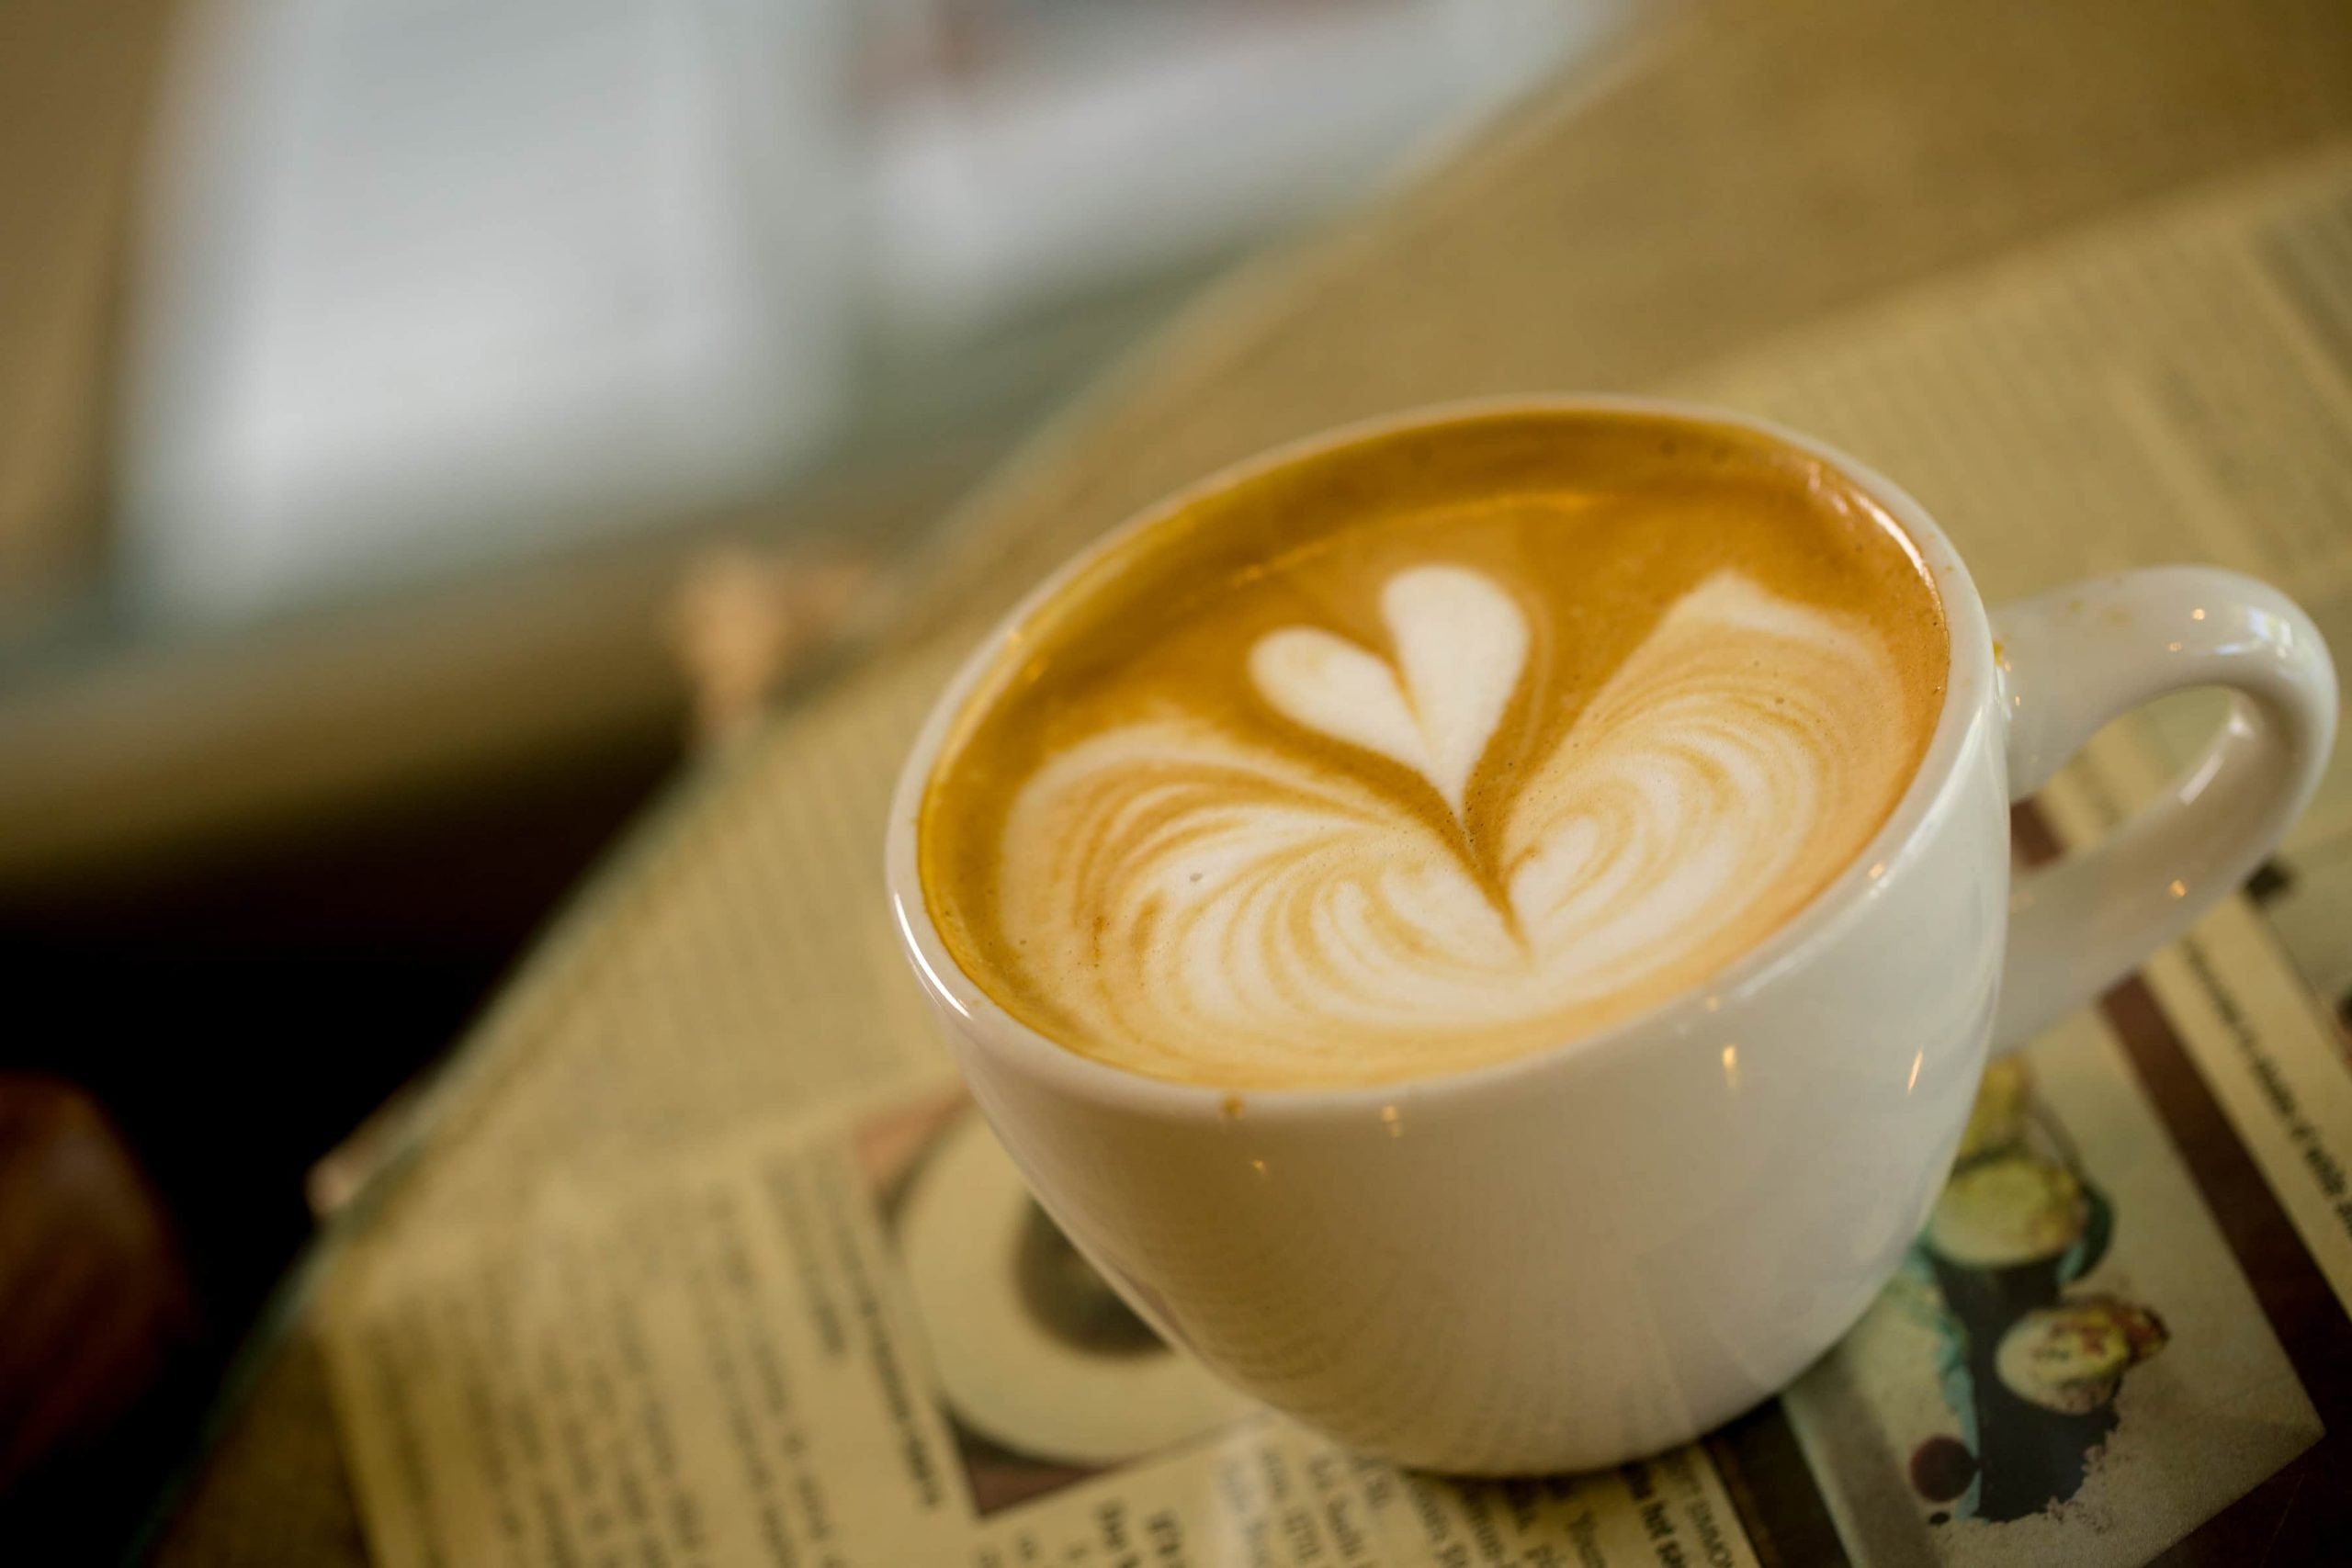 Get free coffee, deals Wednesday for National Coffee Day at Dunkin', Starbucks, Panera and more